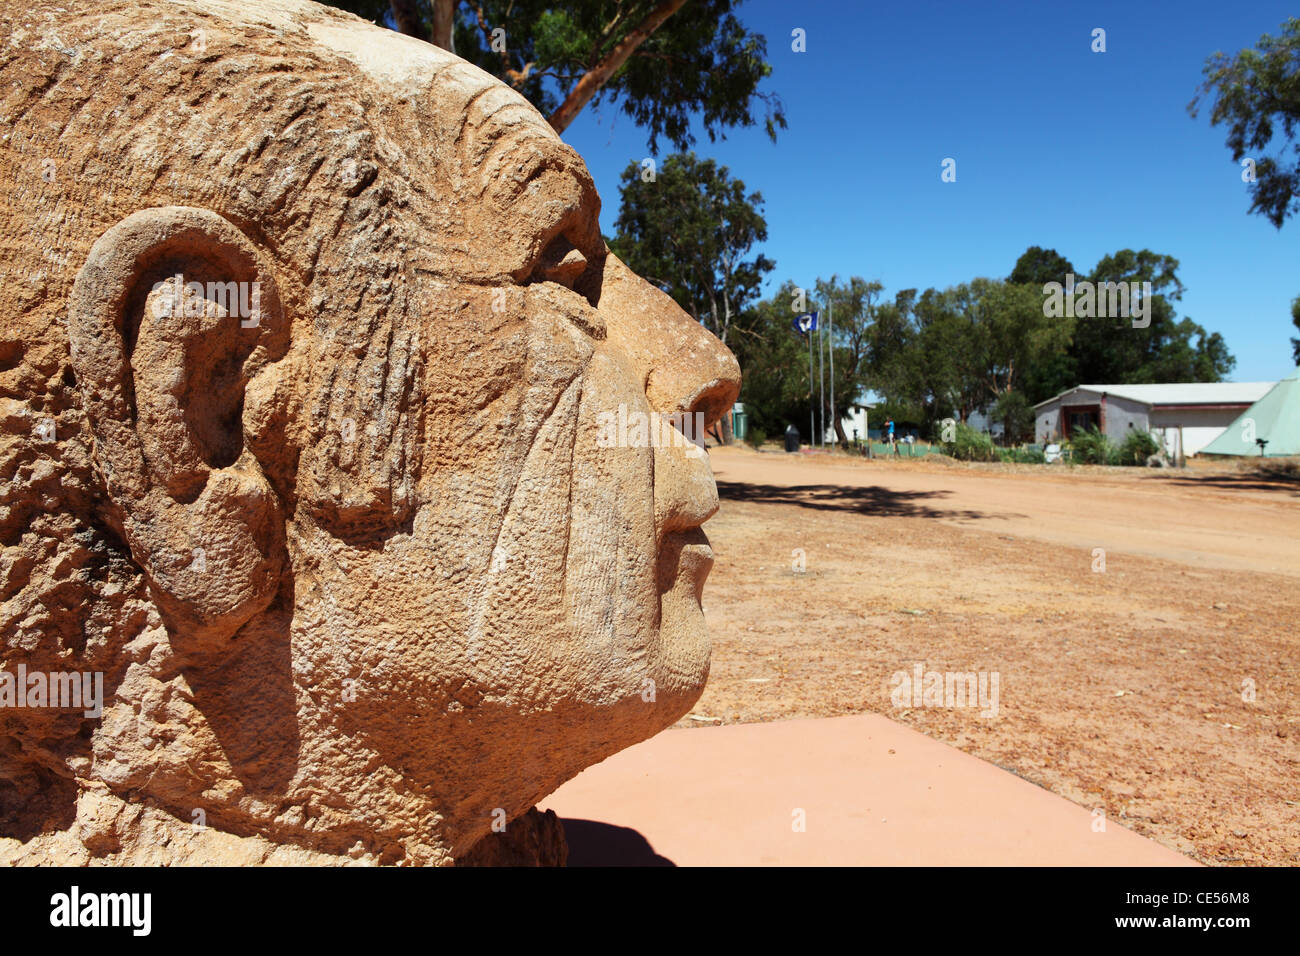 Statue of Prince Leonard at the Principality of Hutt River, within Western Australia. - Stock Image